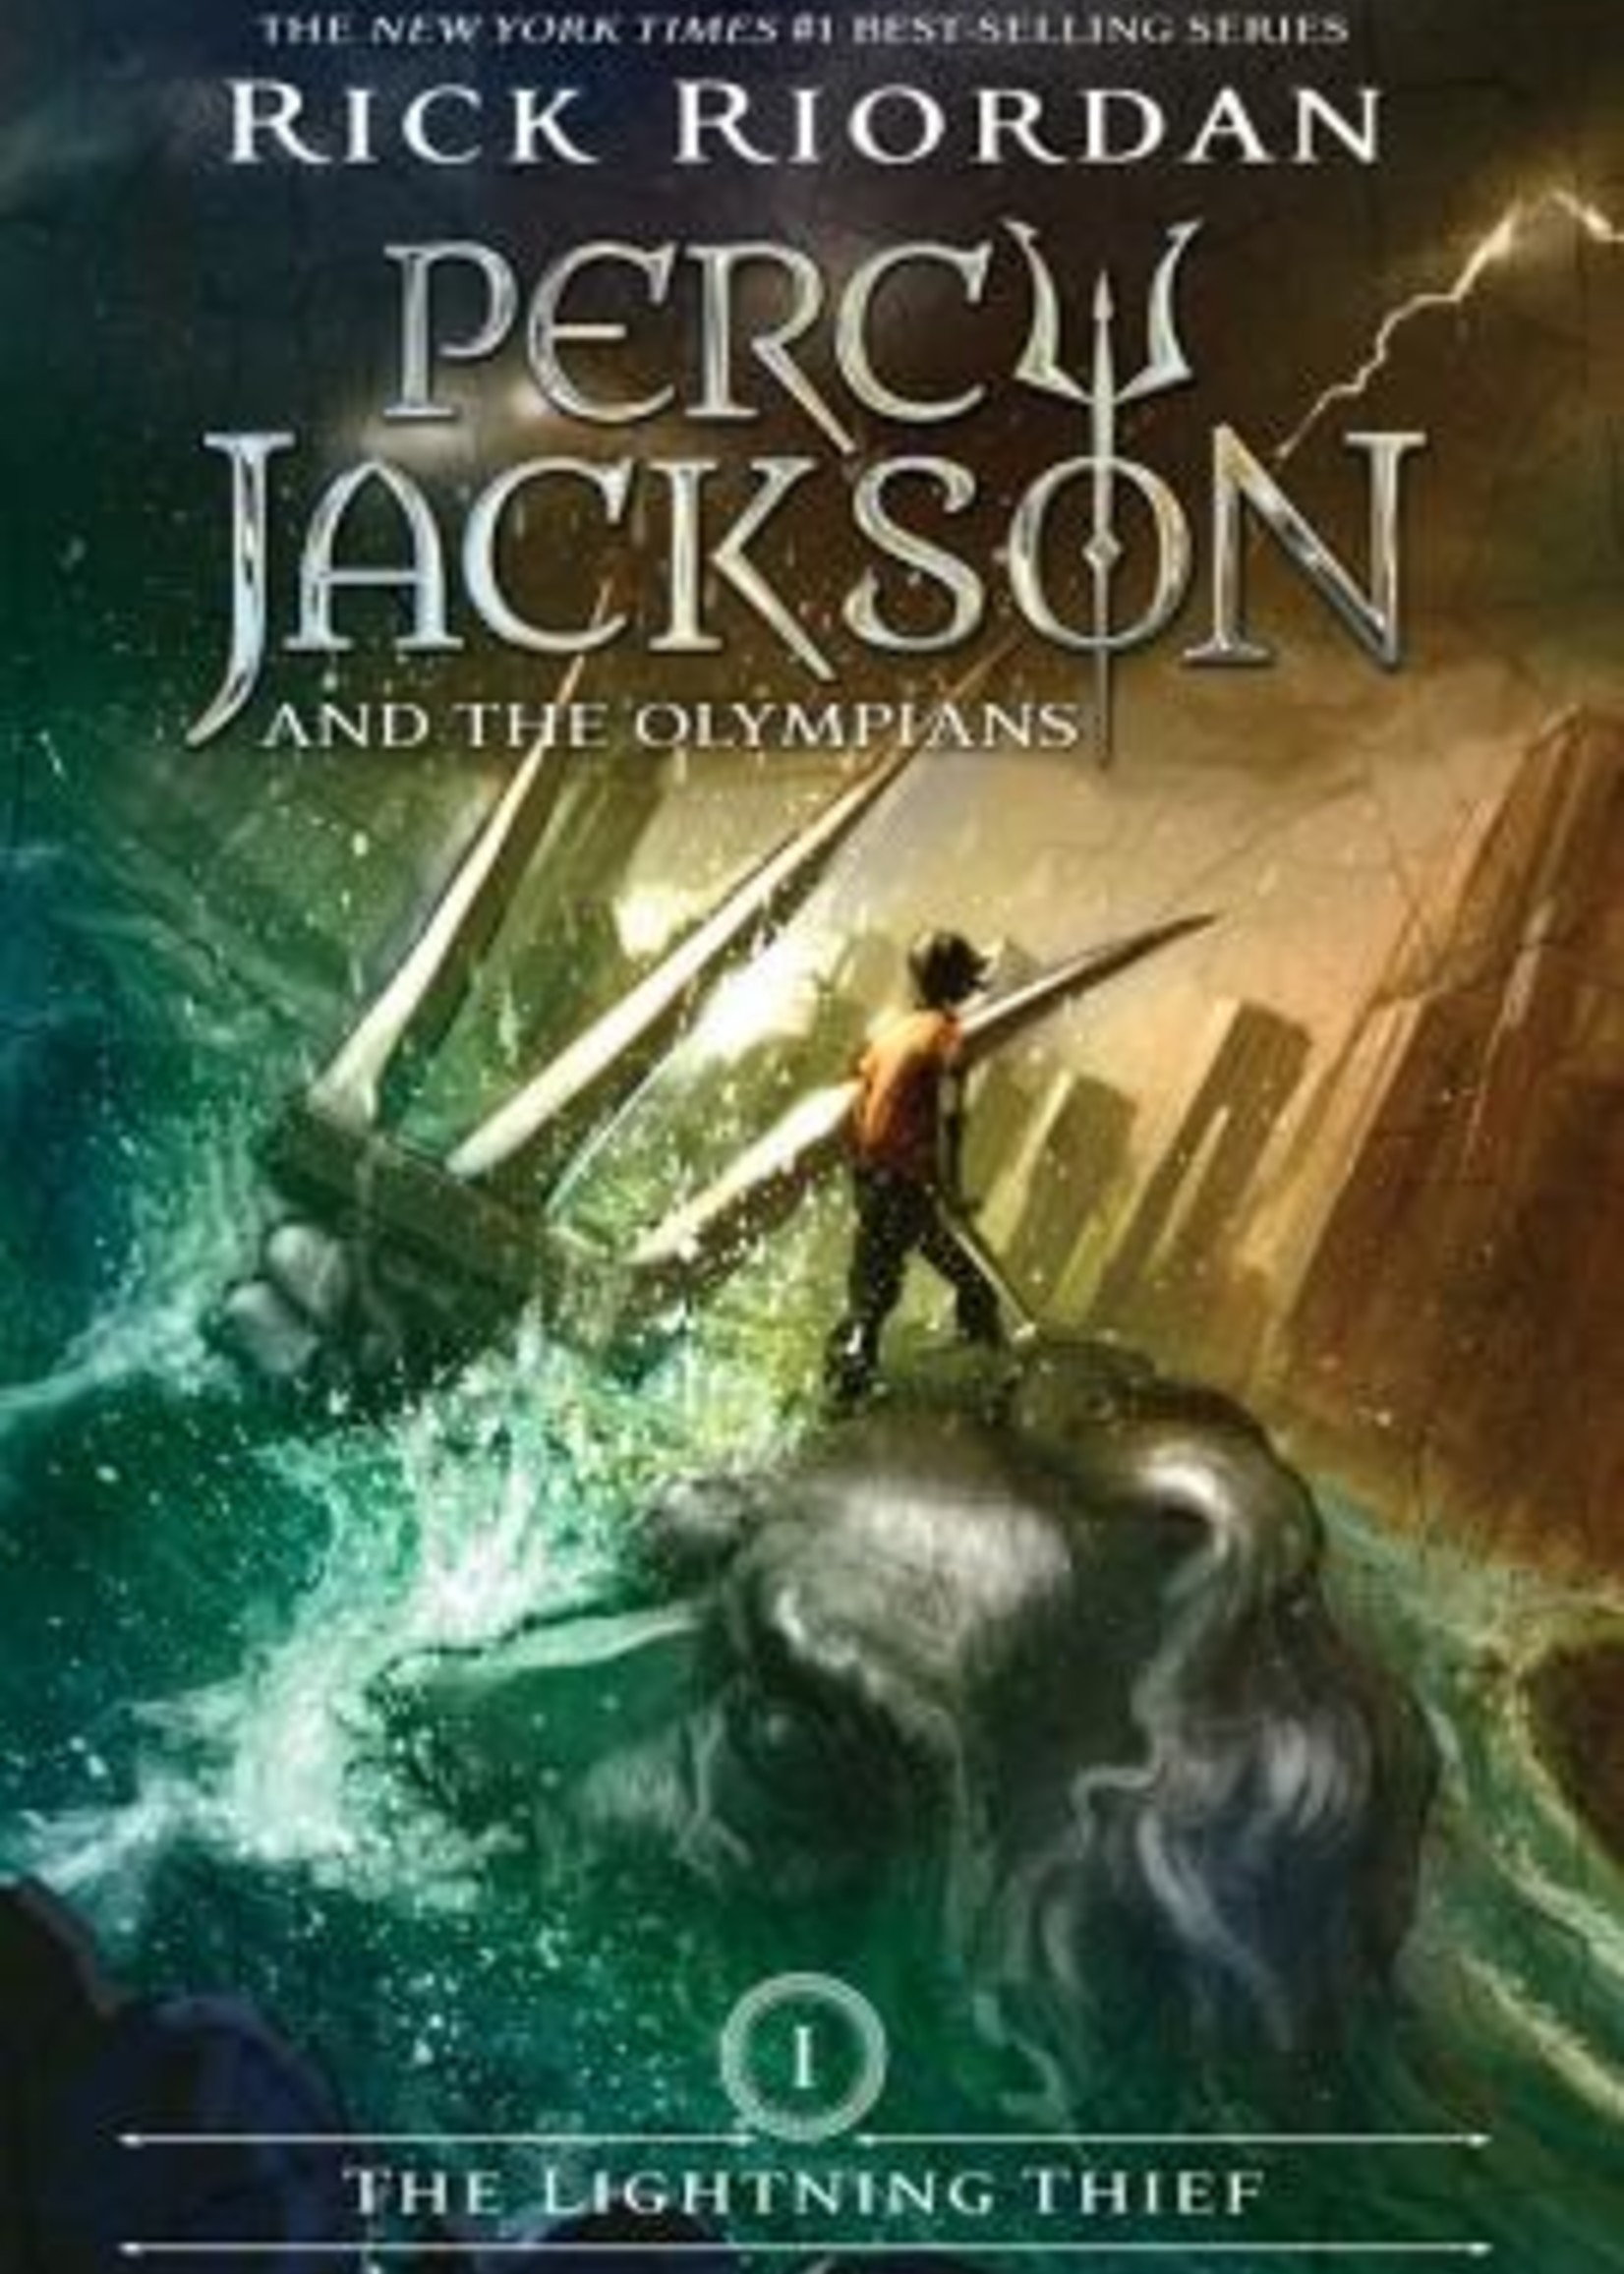 Percy Jackson and the Olympians #01, The Lightning Thief - Paperback